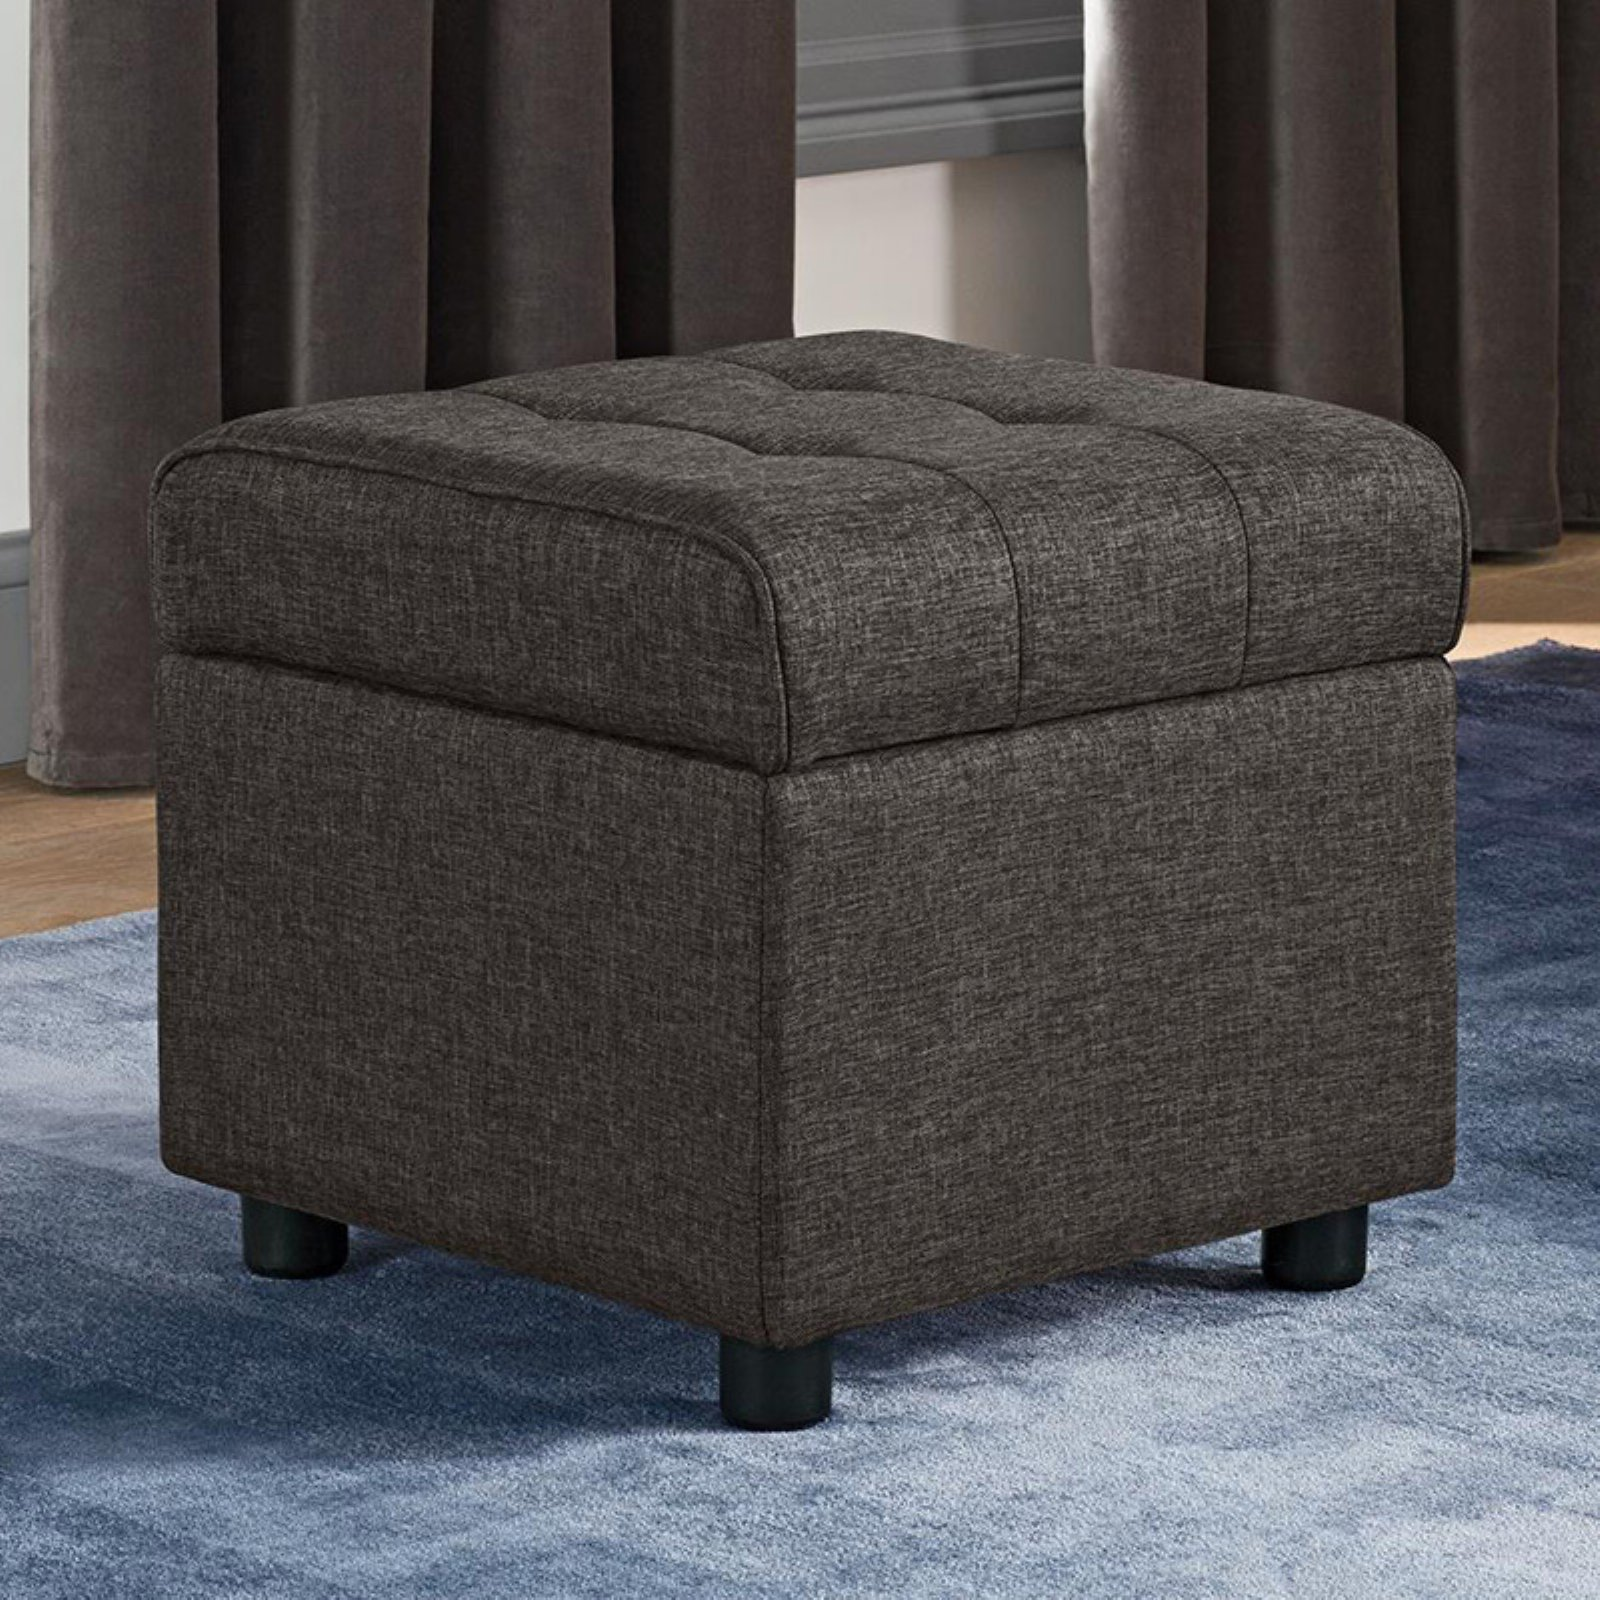 Dorel Home Emily Square Storage Ottoman, Available in Various Colors